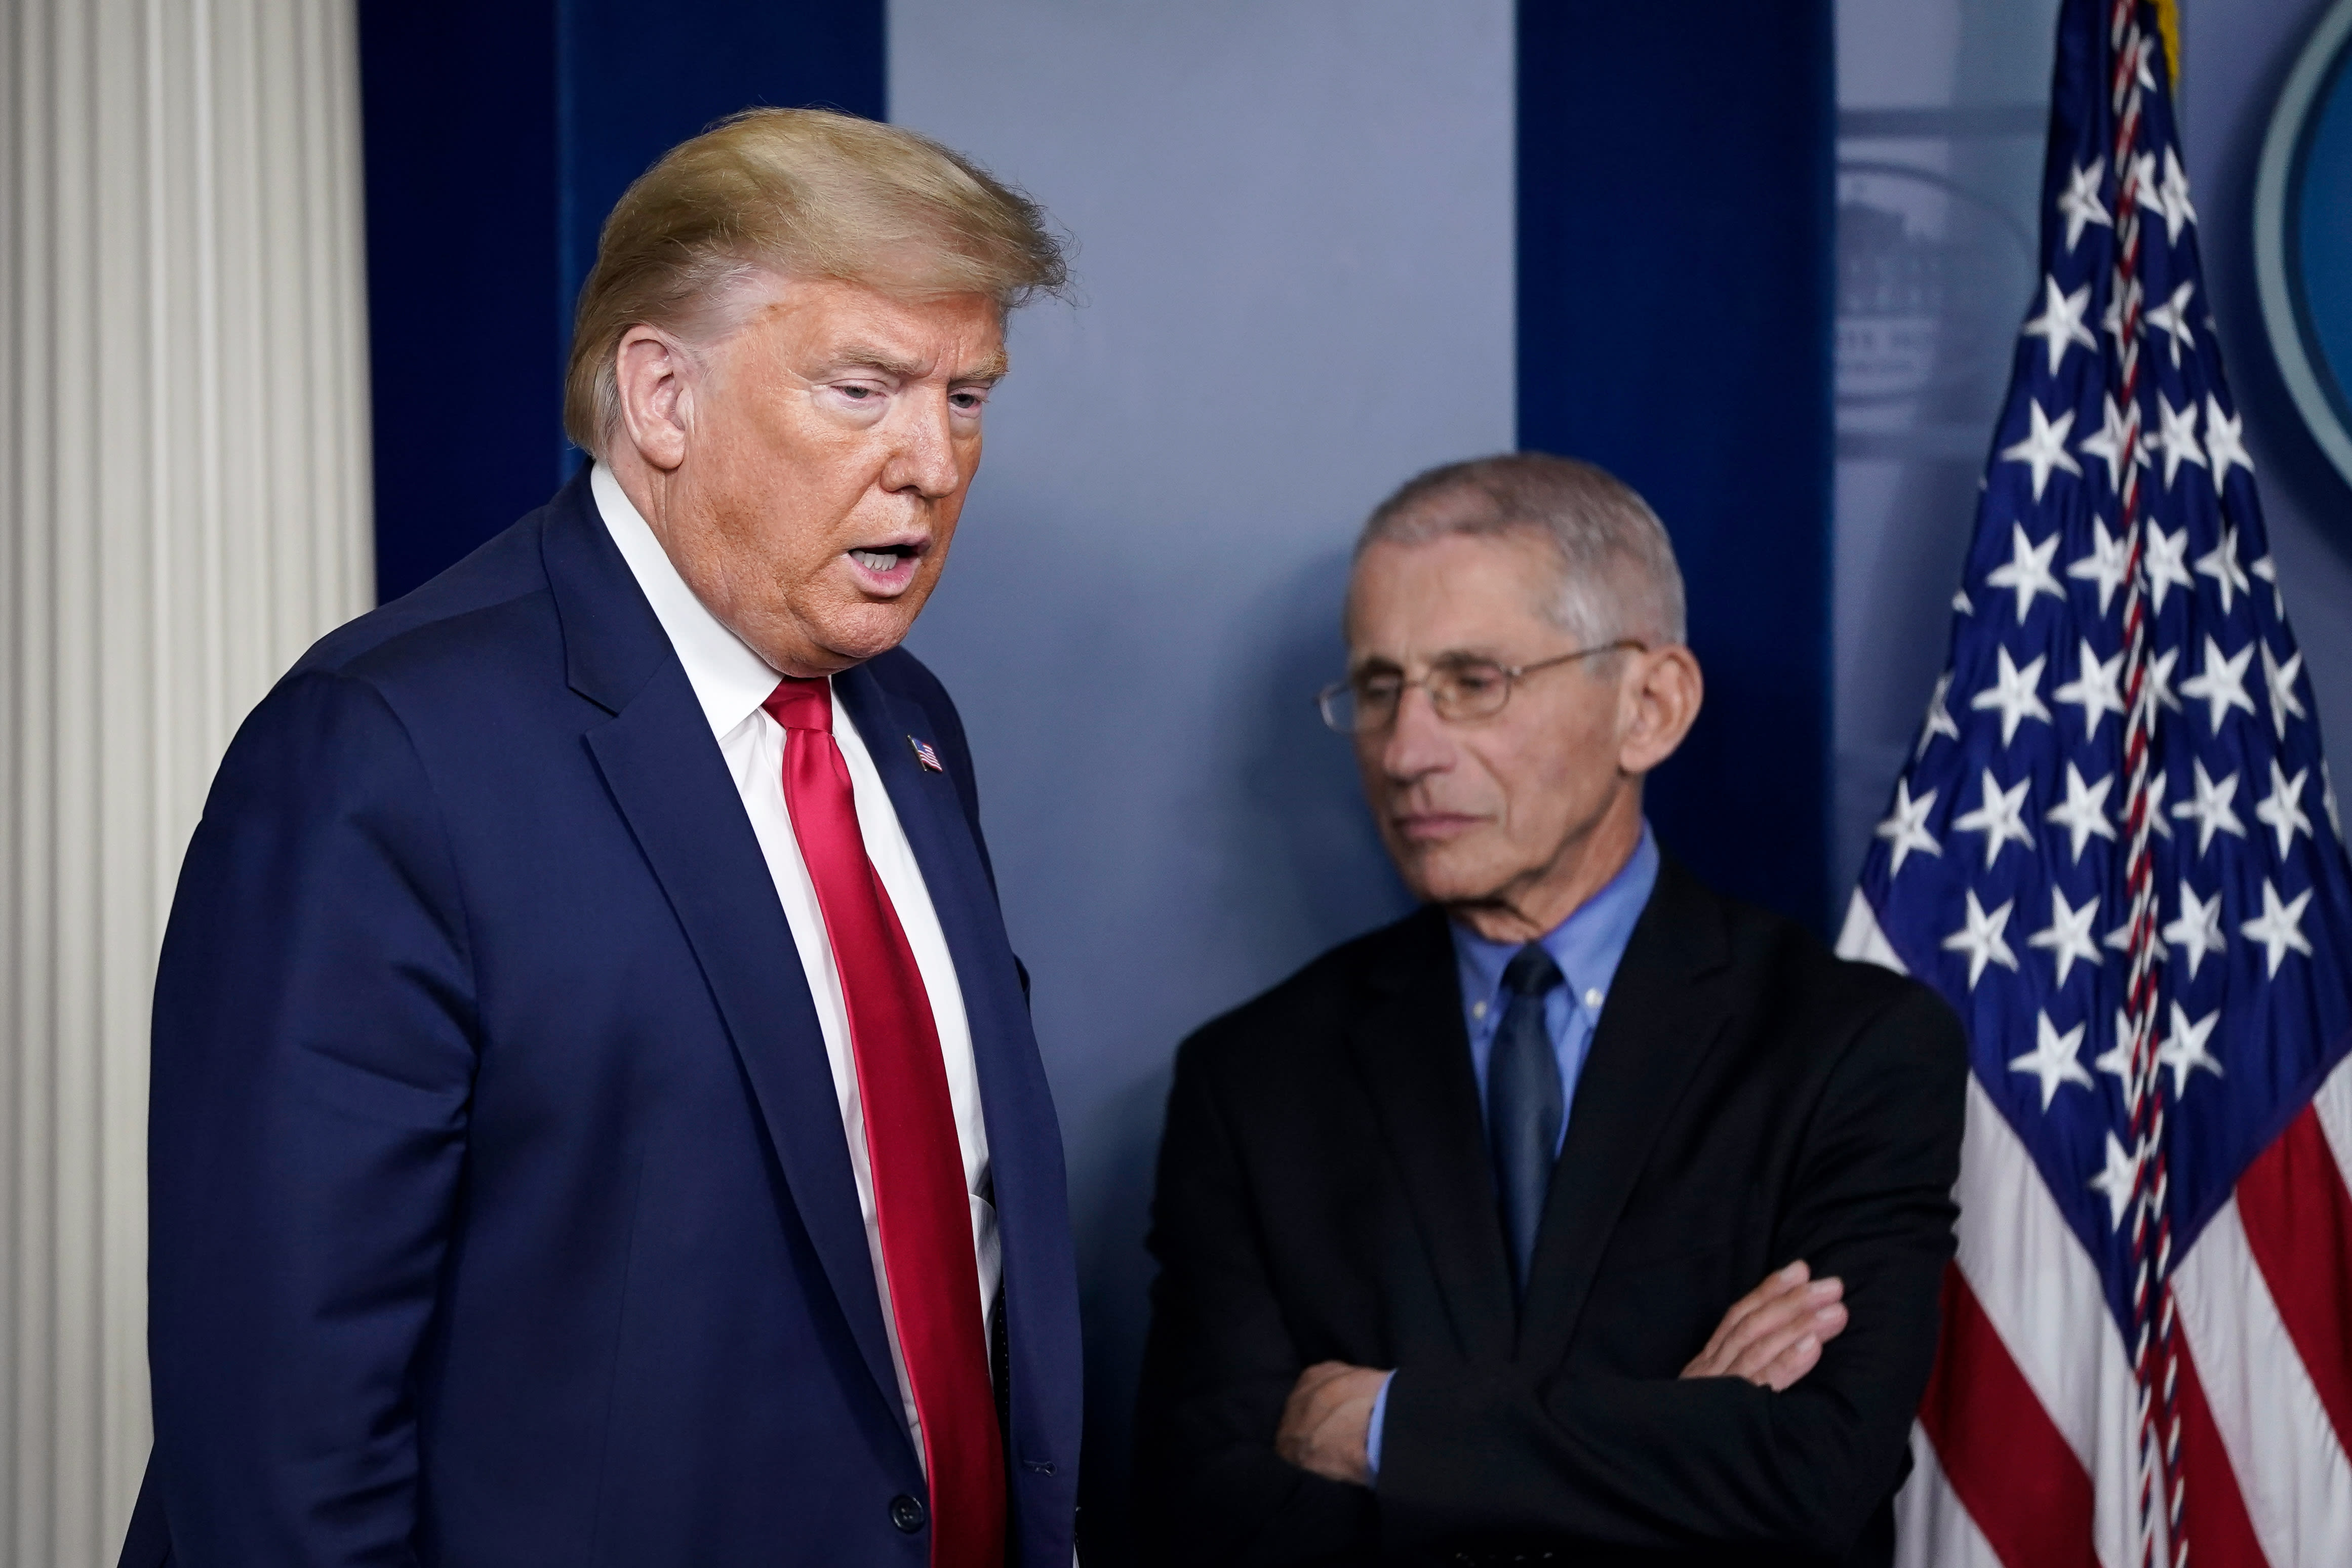 Trump calls Fauci a 'disaster,' says people 'are tired of Covid'